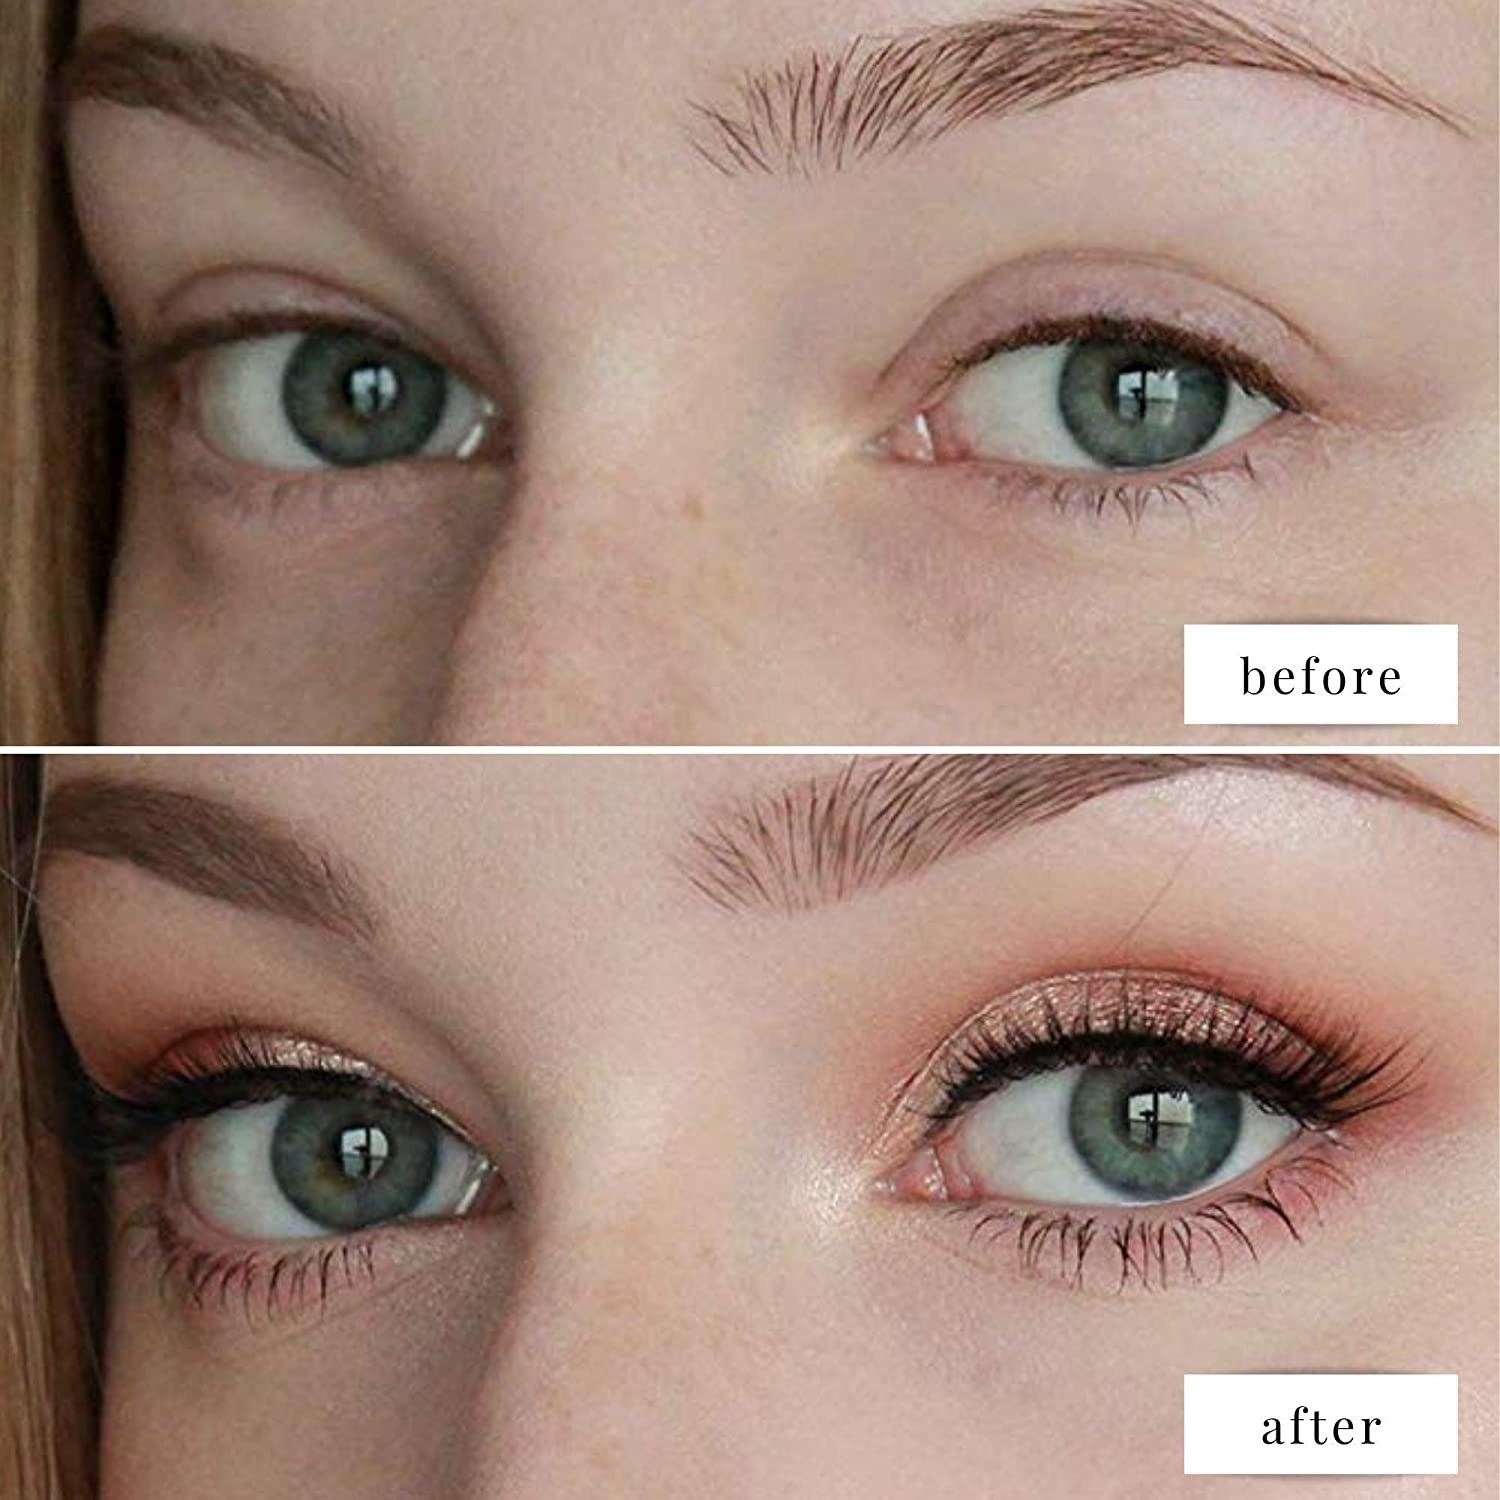 model before and after applying eye shadow and primer